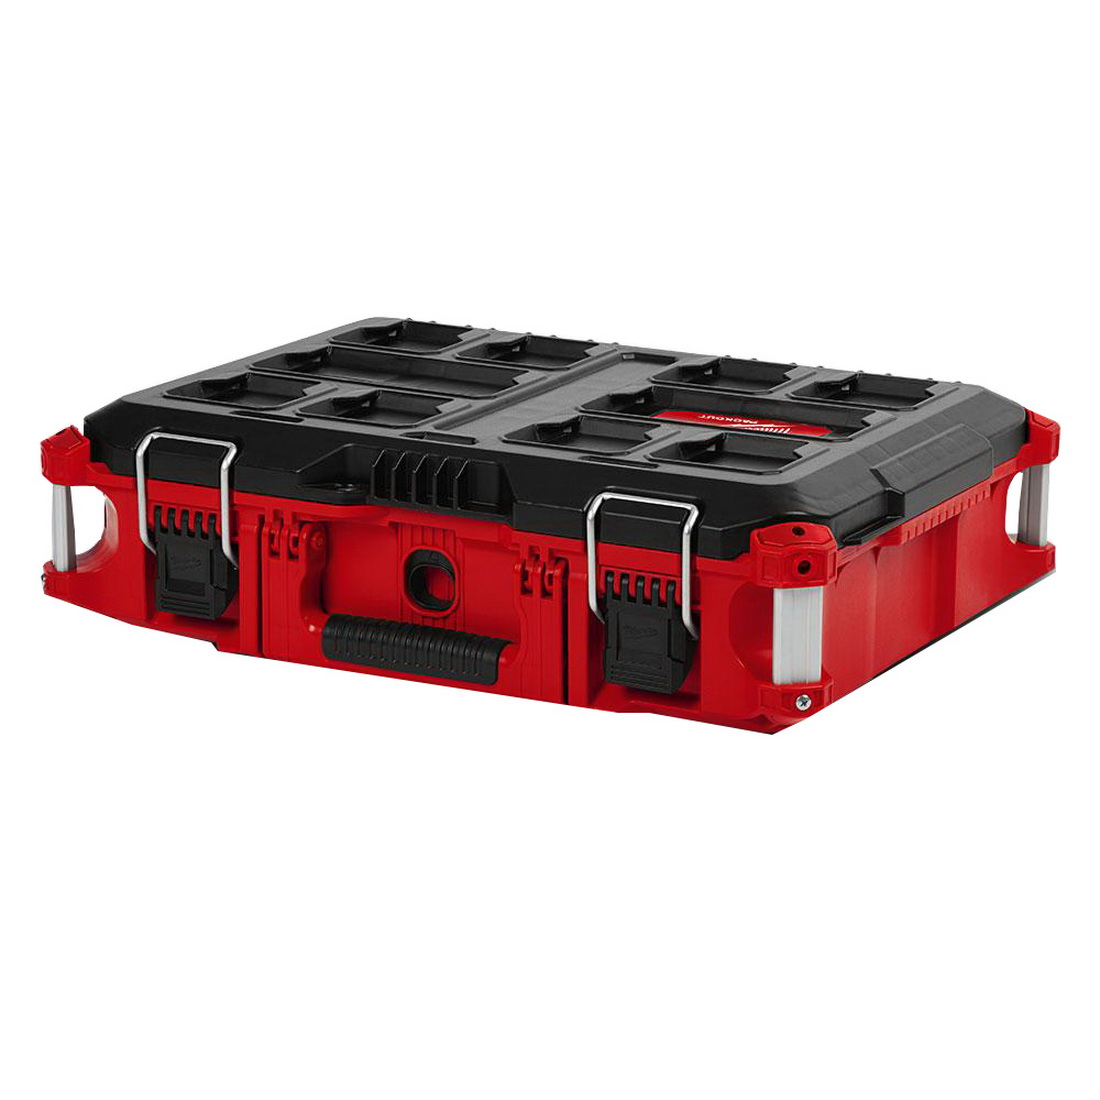 PACKOUT Small Tool Box